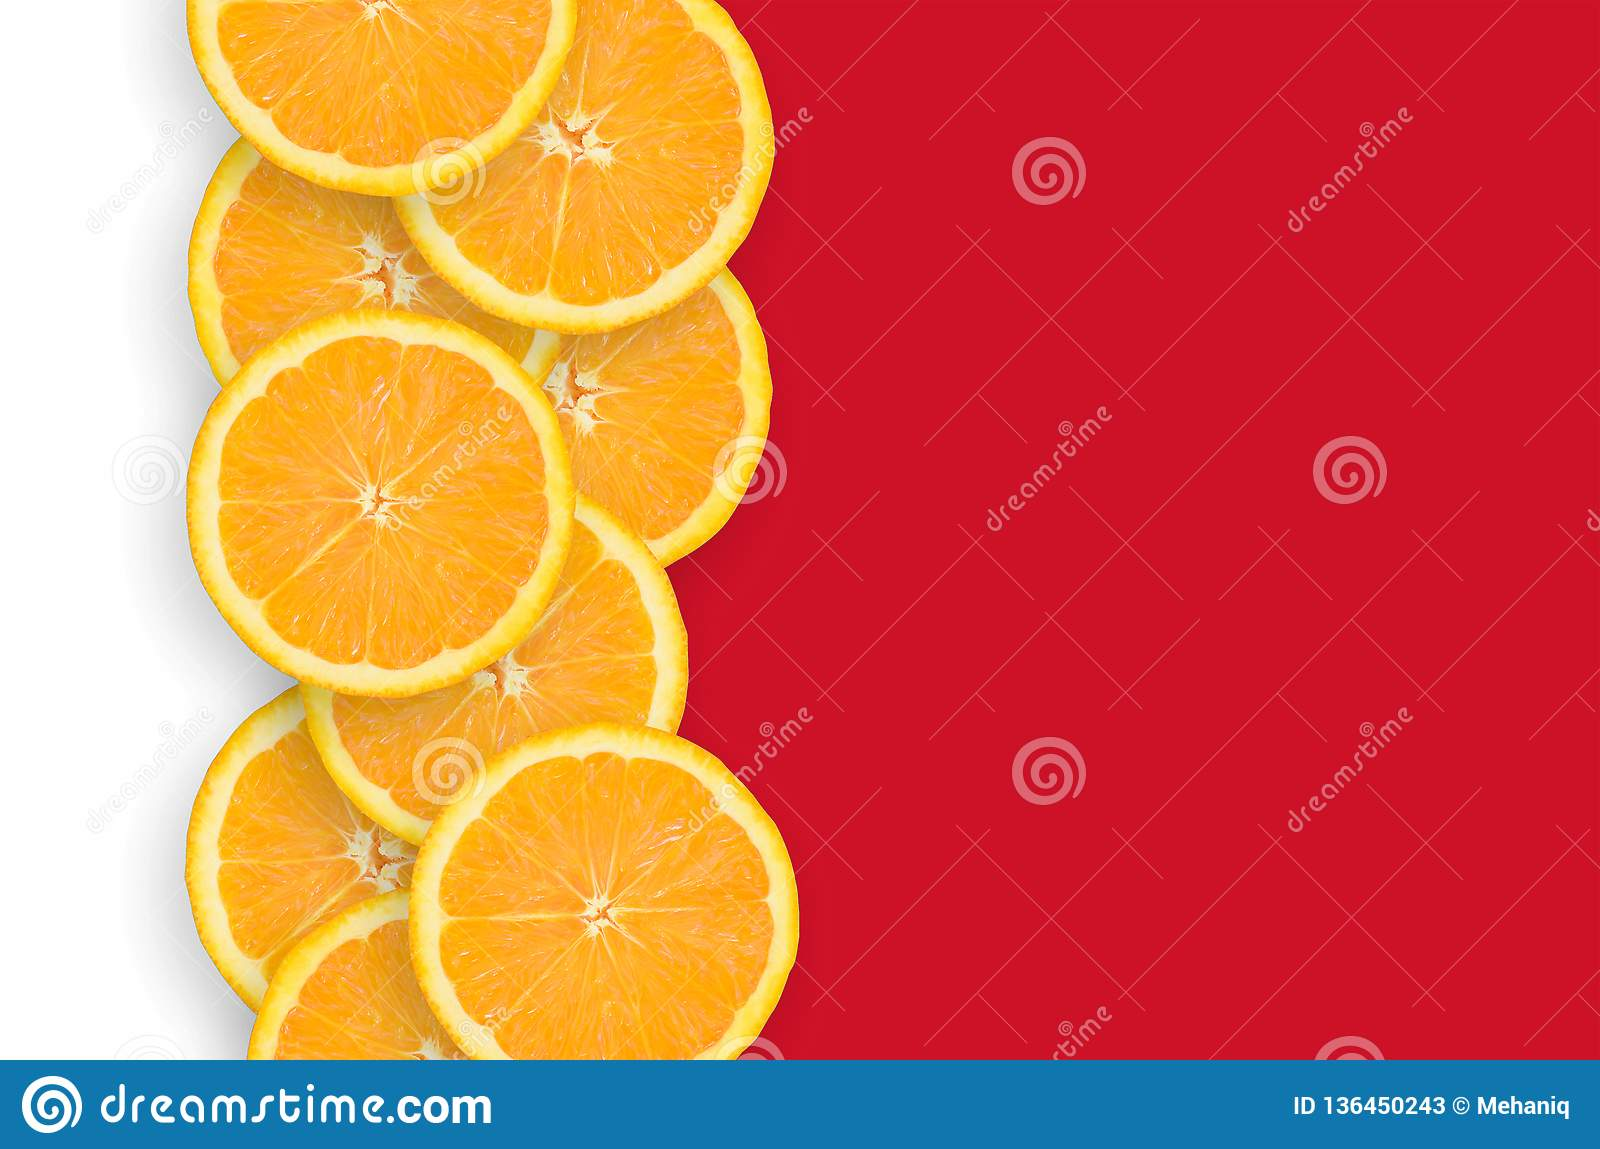 Bahrain Flag And Citrus Fruit Slices Vertical Row Stock